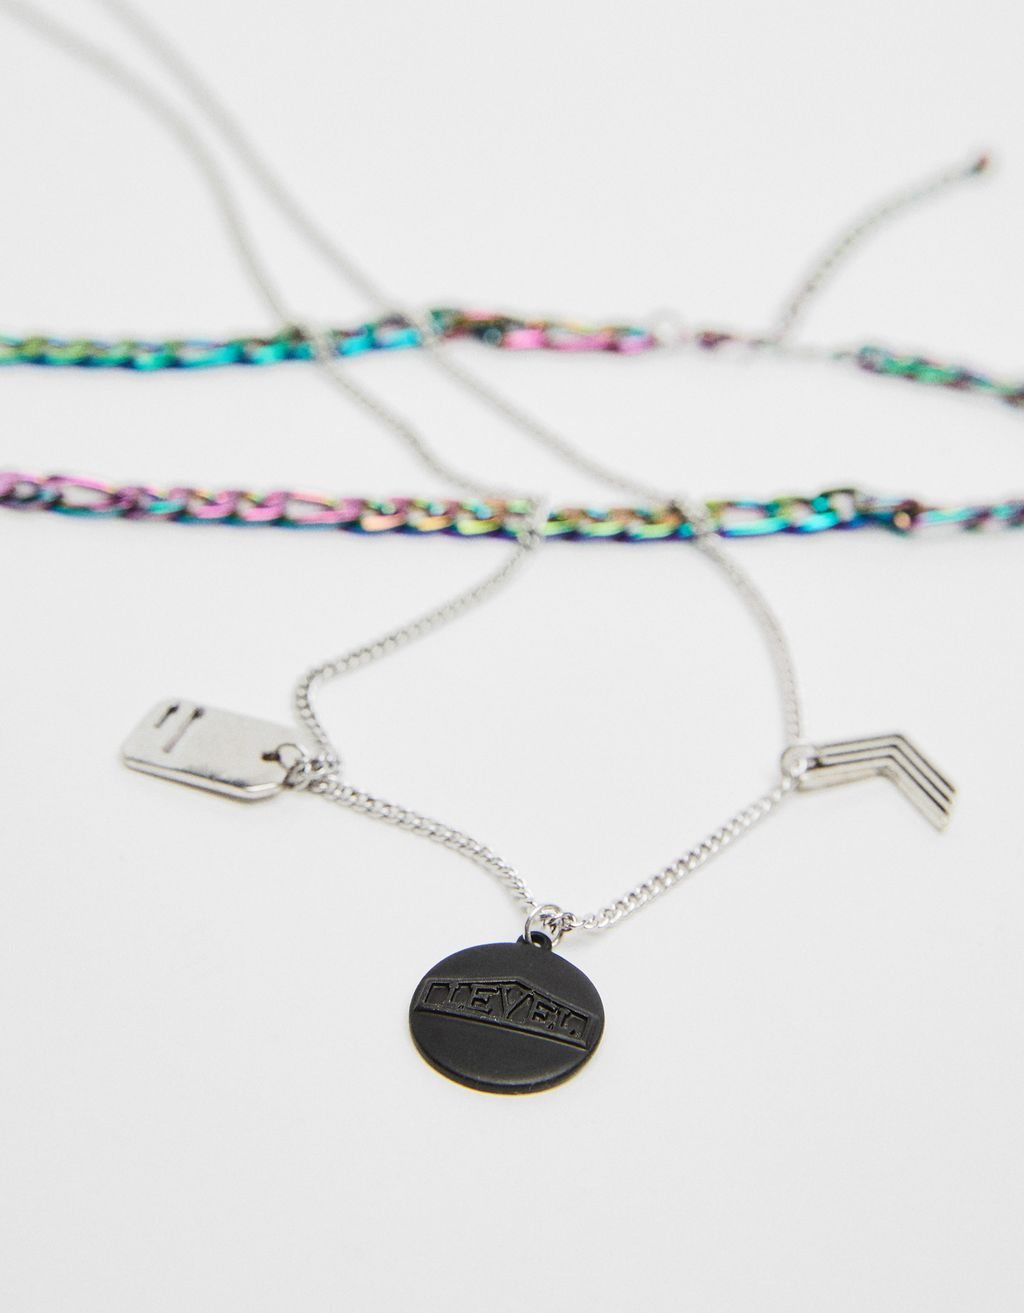 Chain necklace with multicolored